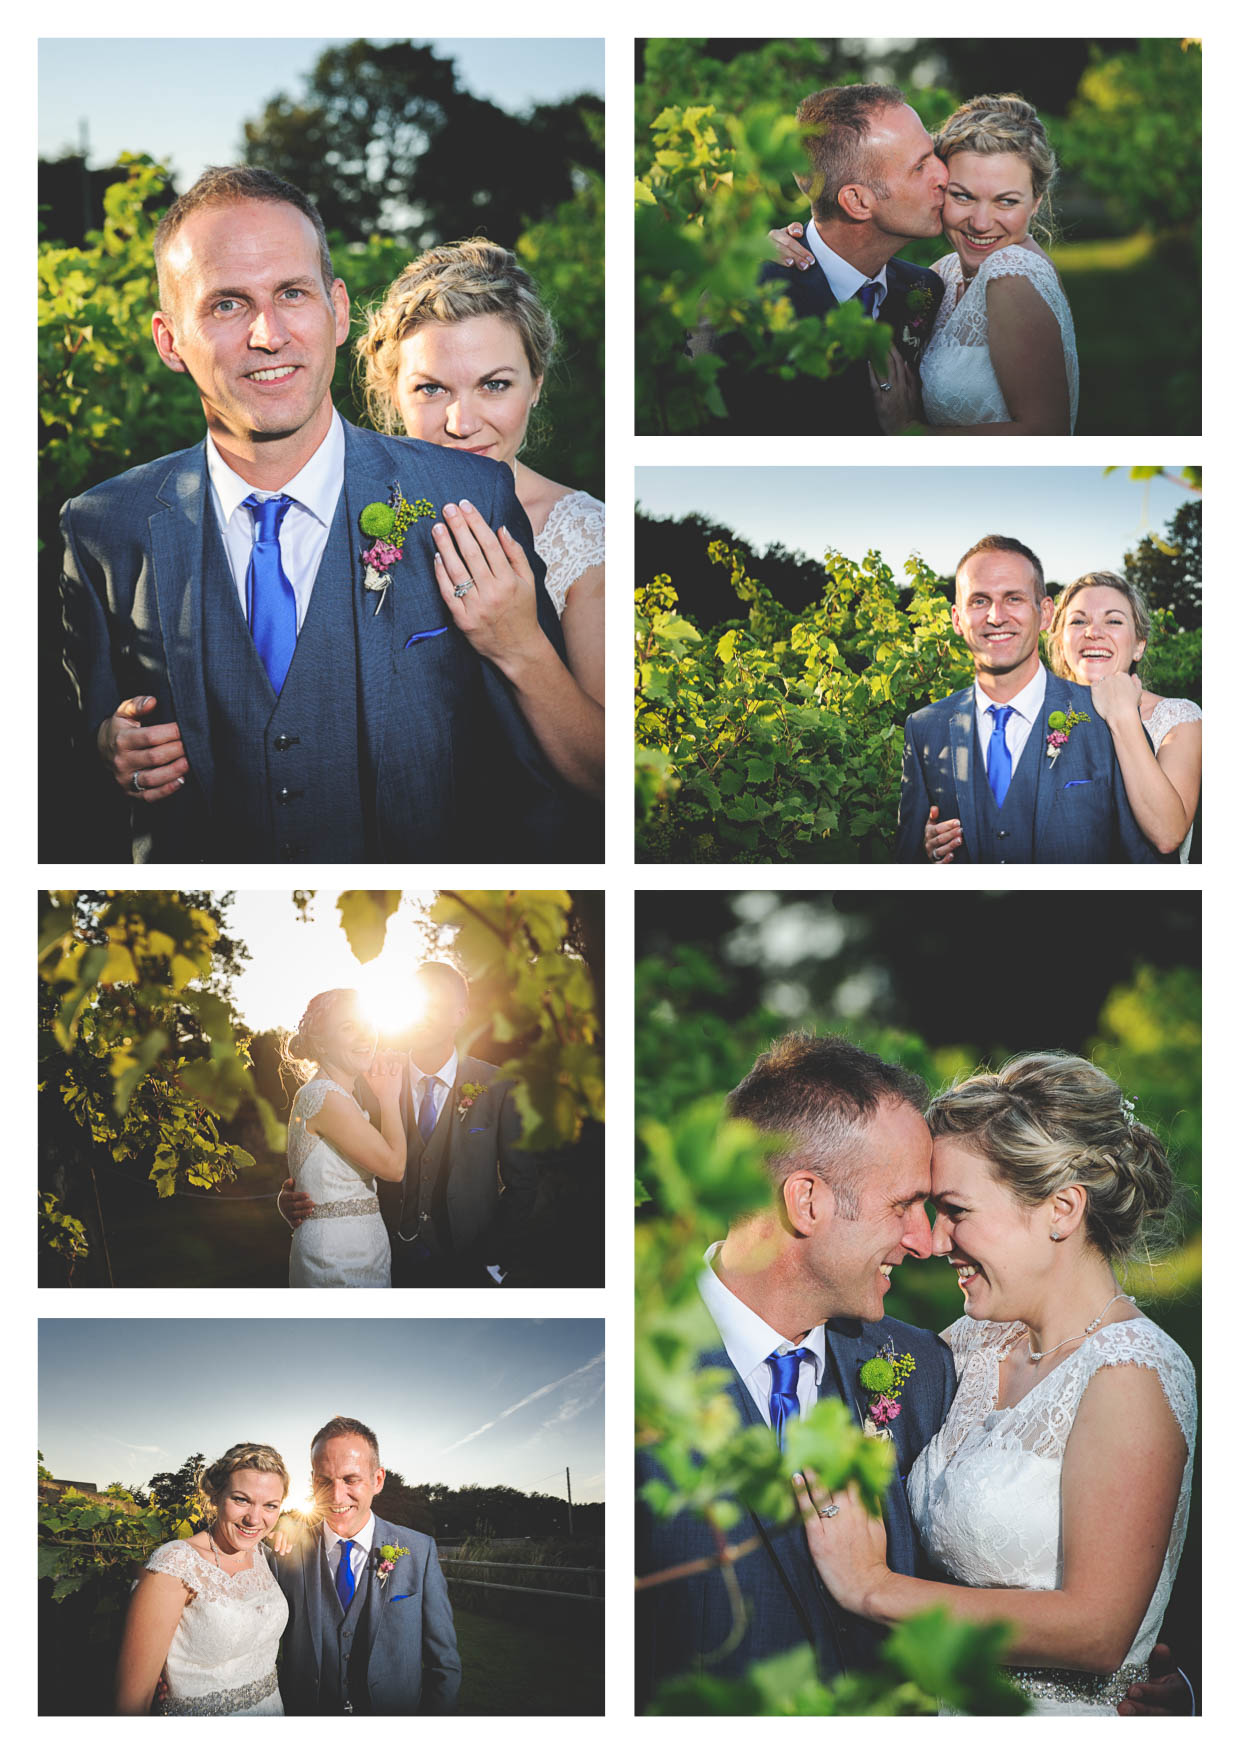 Photographs of a beautiful bride and groom on their wedding day amongst the vines at llanerch vineyard enjoying some couple time together in evening sunset